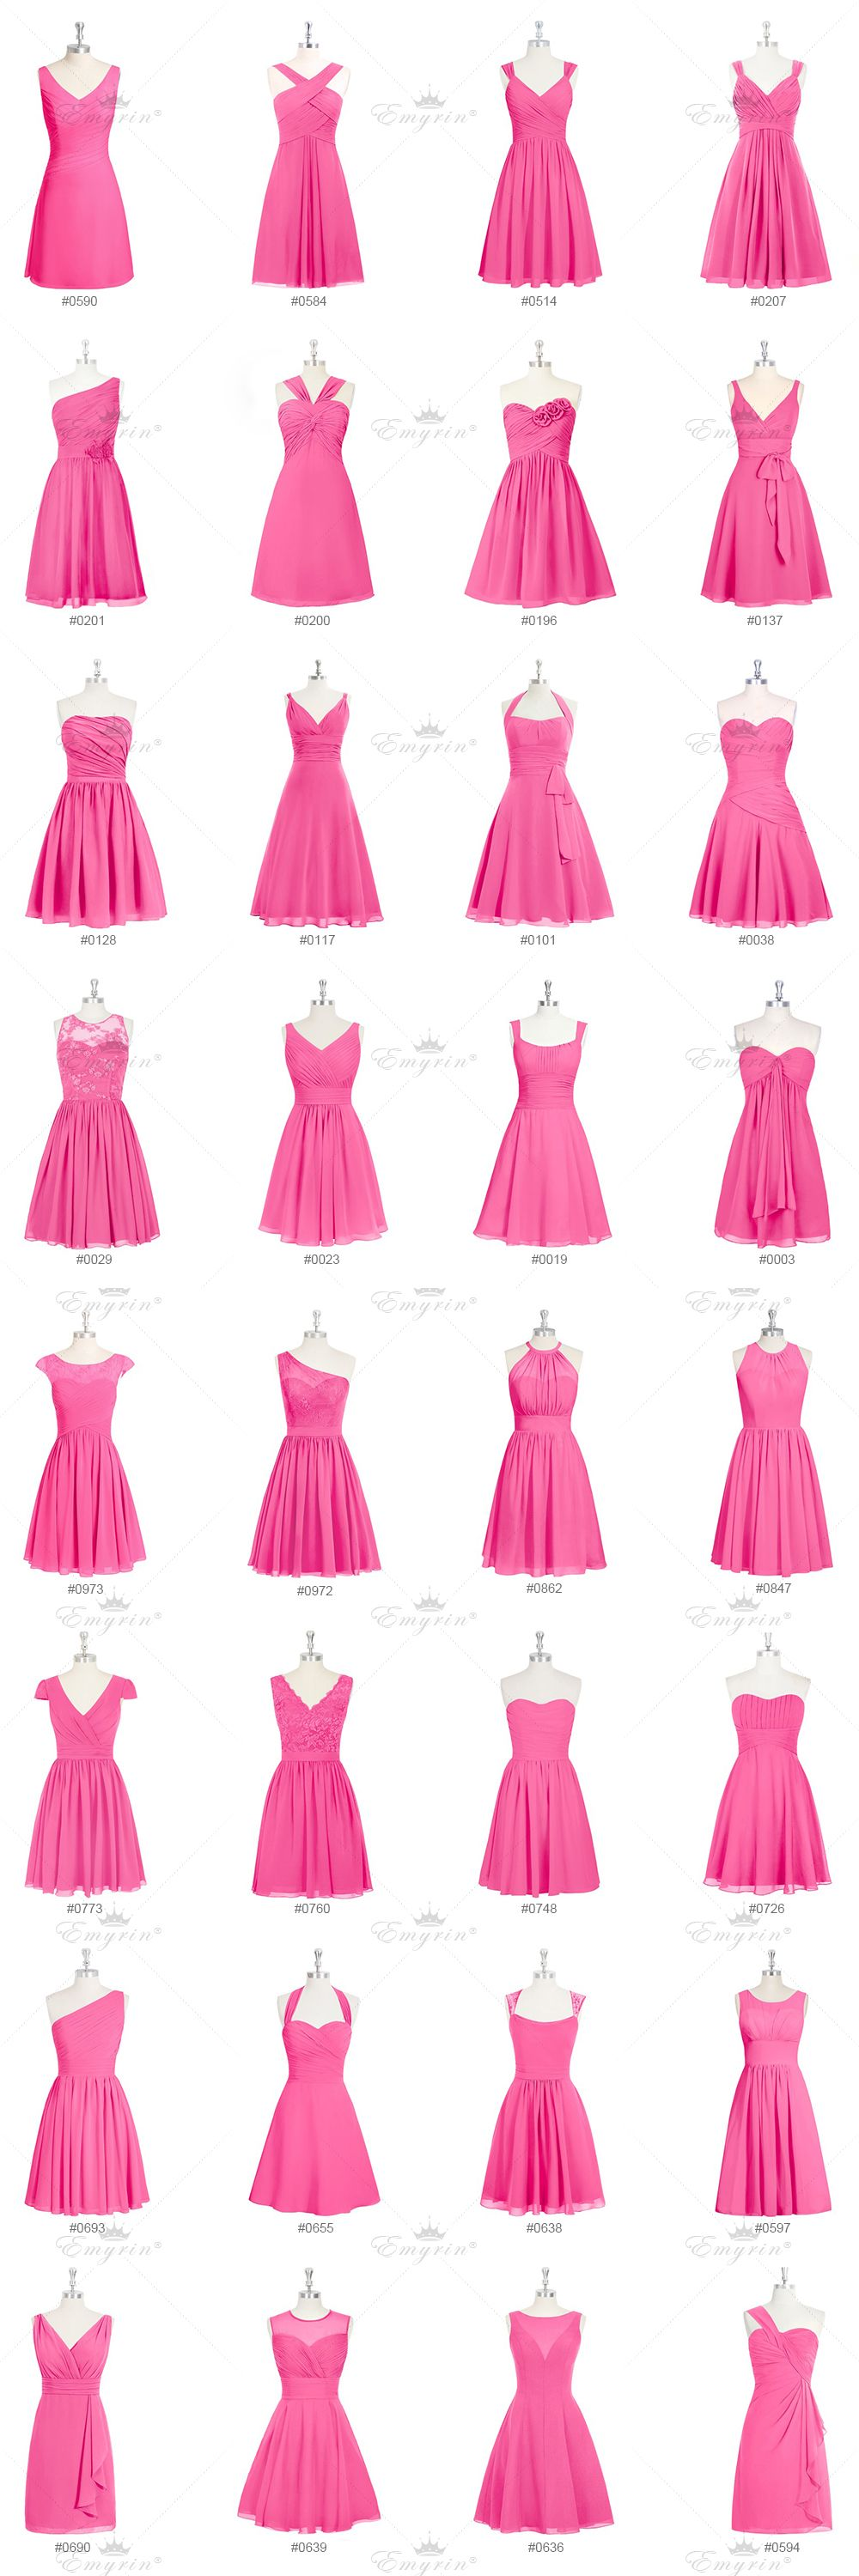 $59.99 Every Items, azalea bridesmaid dresses, bridesmaid dresses ...